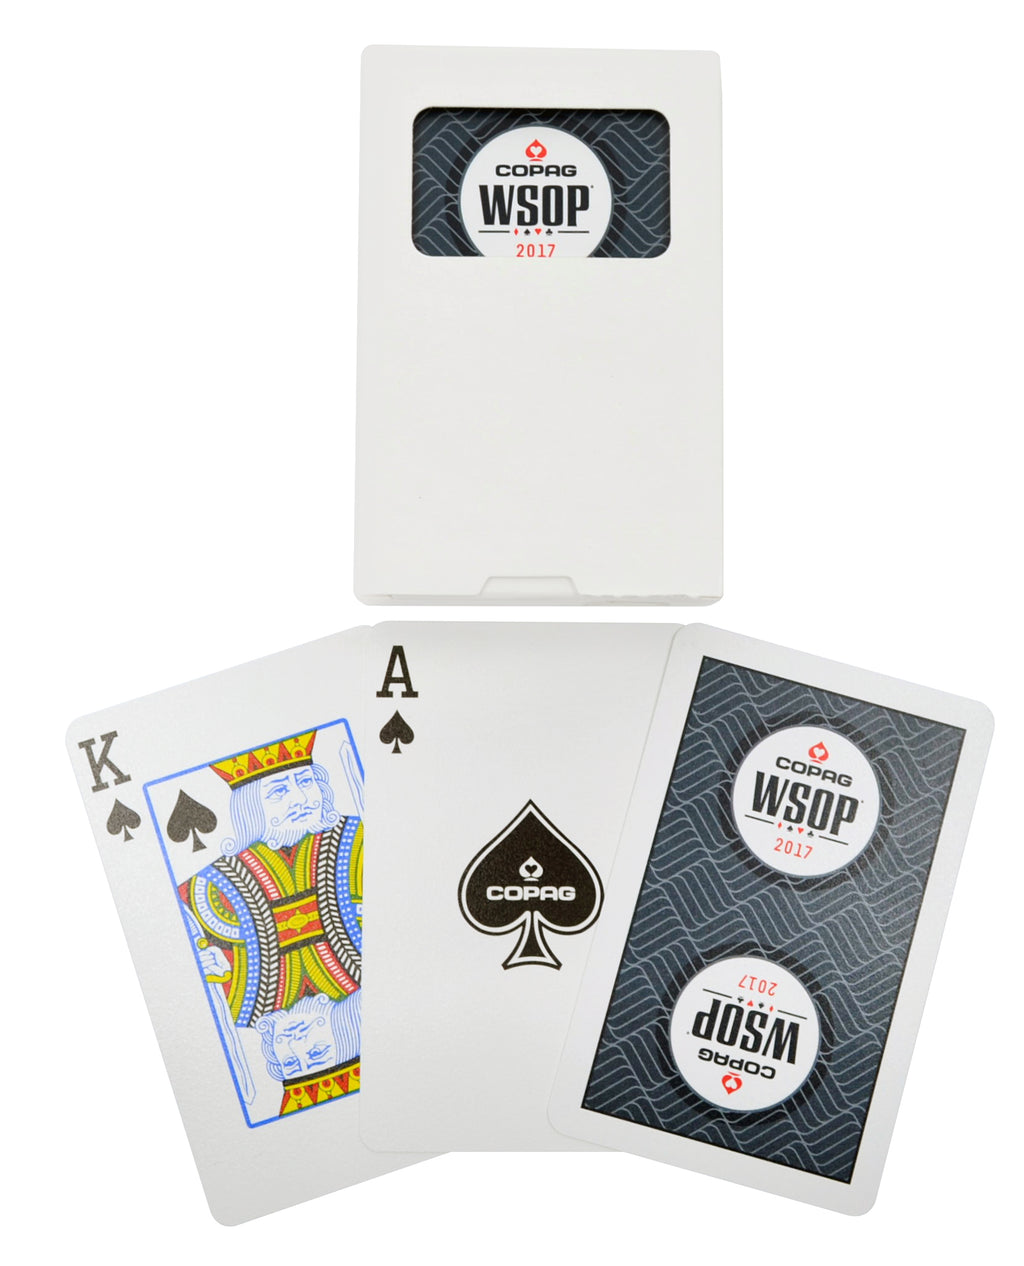 Copag 2017 WSOP Bridge Size Regular Index Playing Cards Black Single Deck